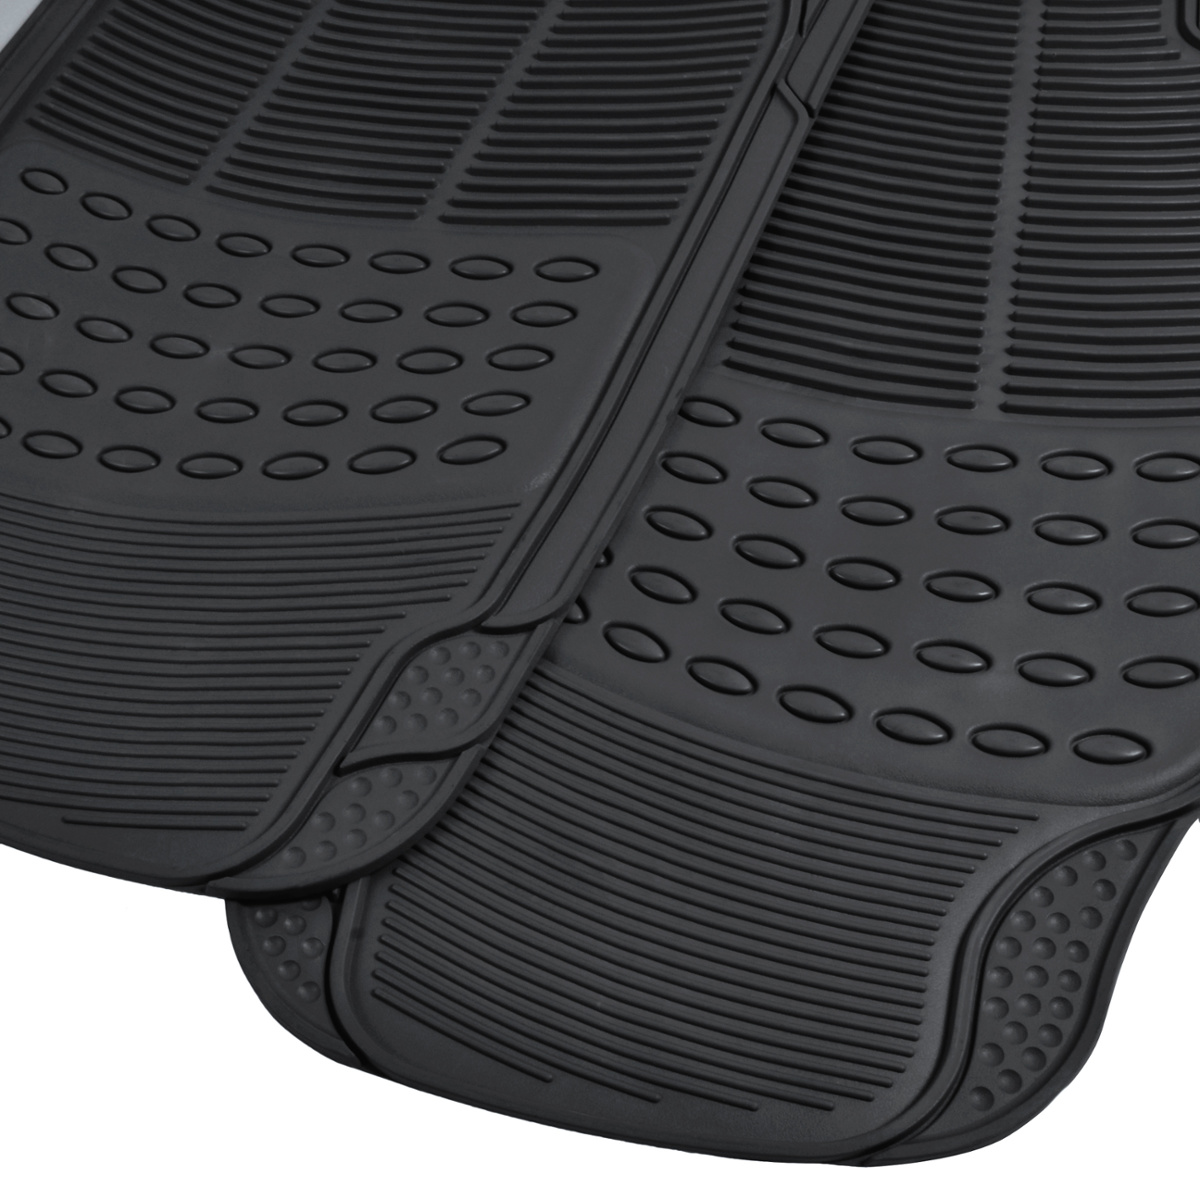 Rubber floor mats toyota rav4 - Rubber Liner For Toyota Rav4 Floor Mats Black 3 Pc Semi Custom Fit All Weather